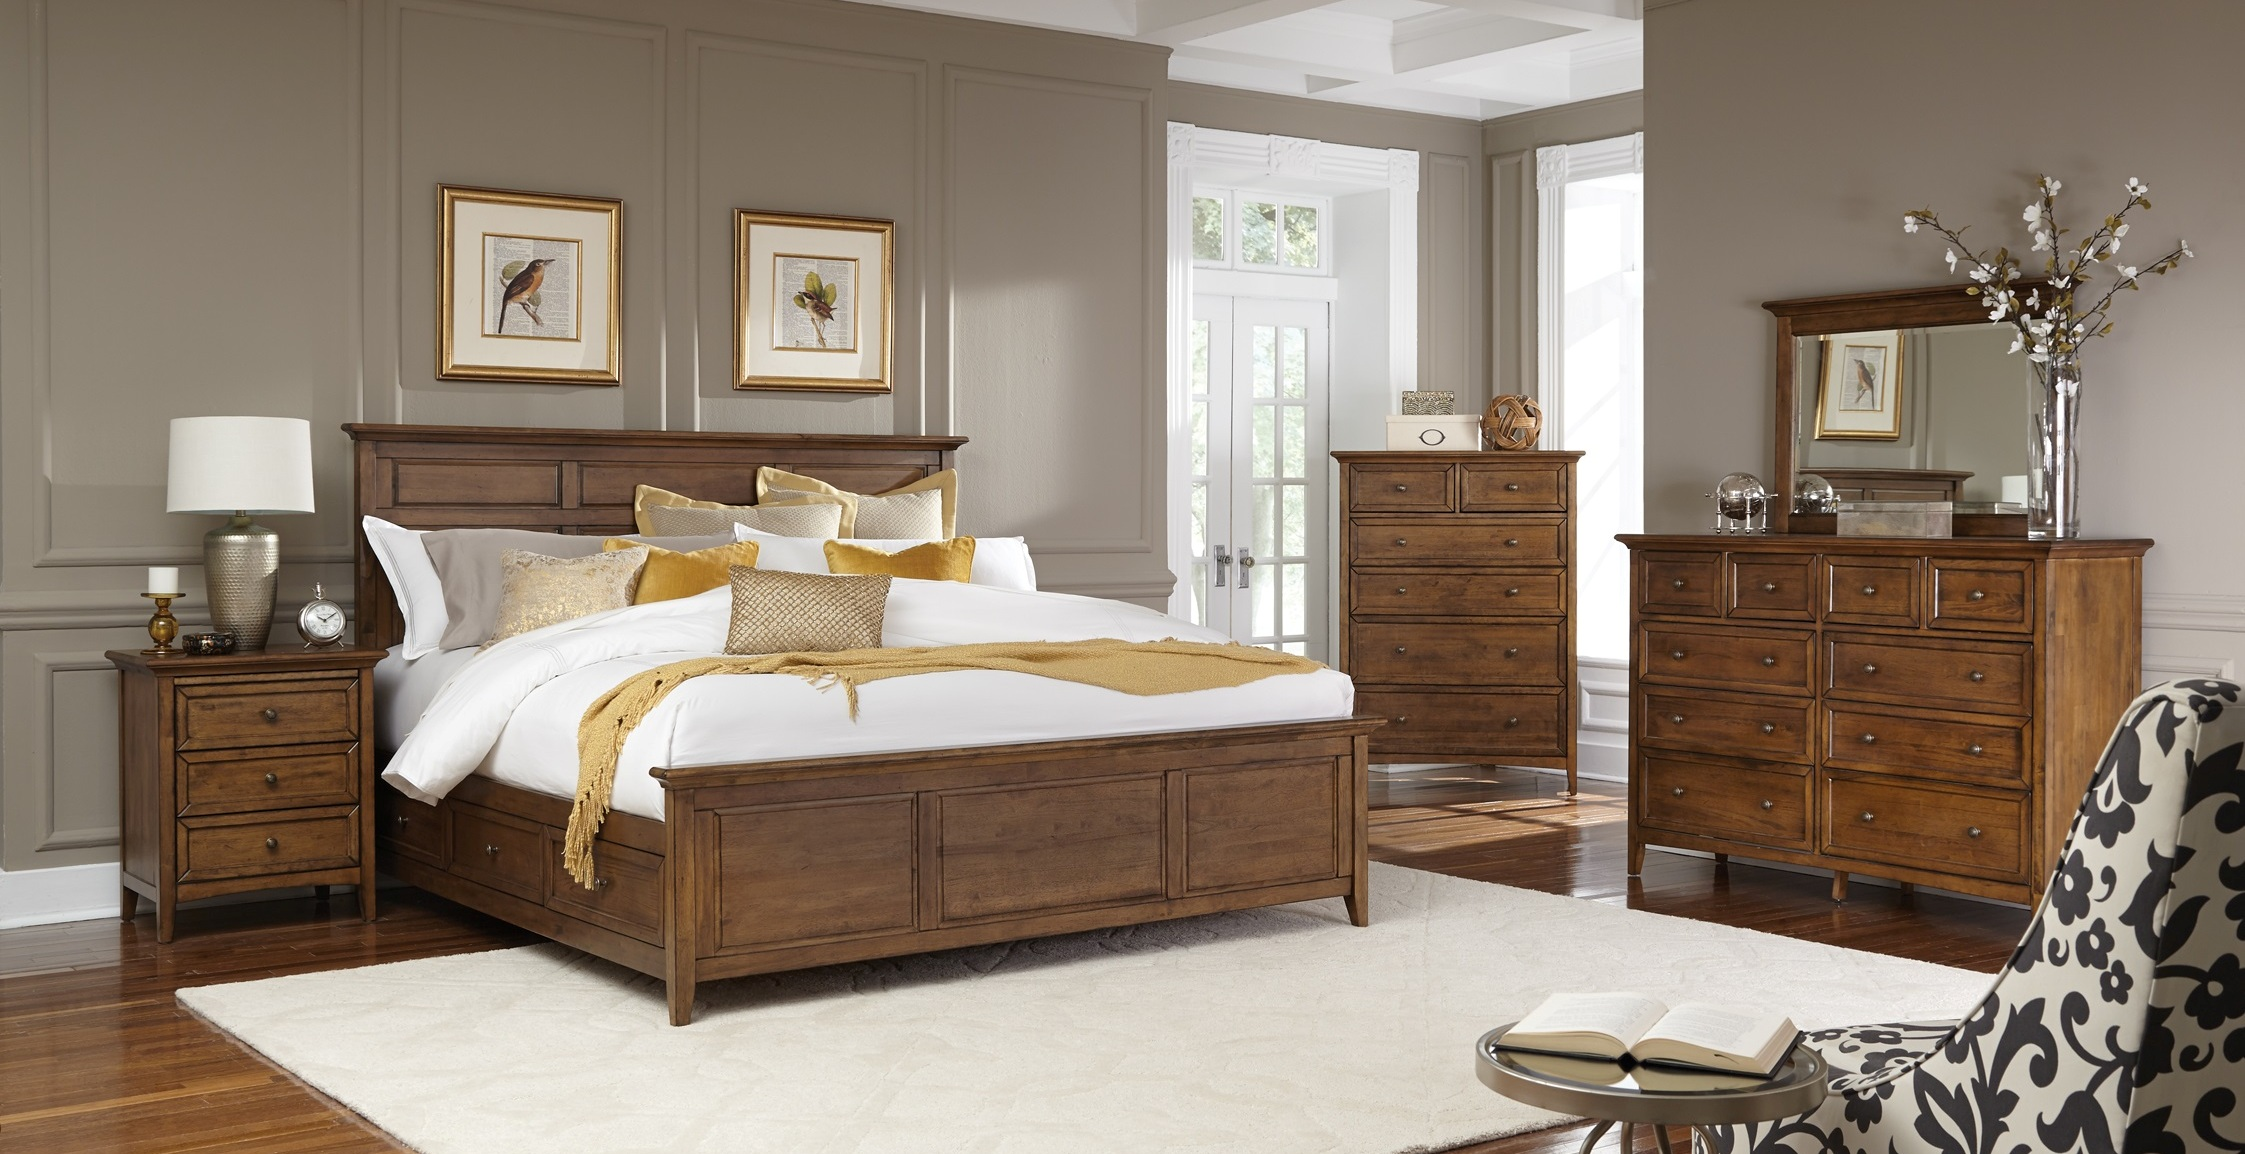 Jacksonville S Real Wood Furniture Store Wood You